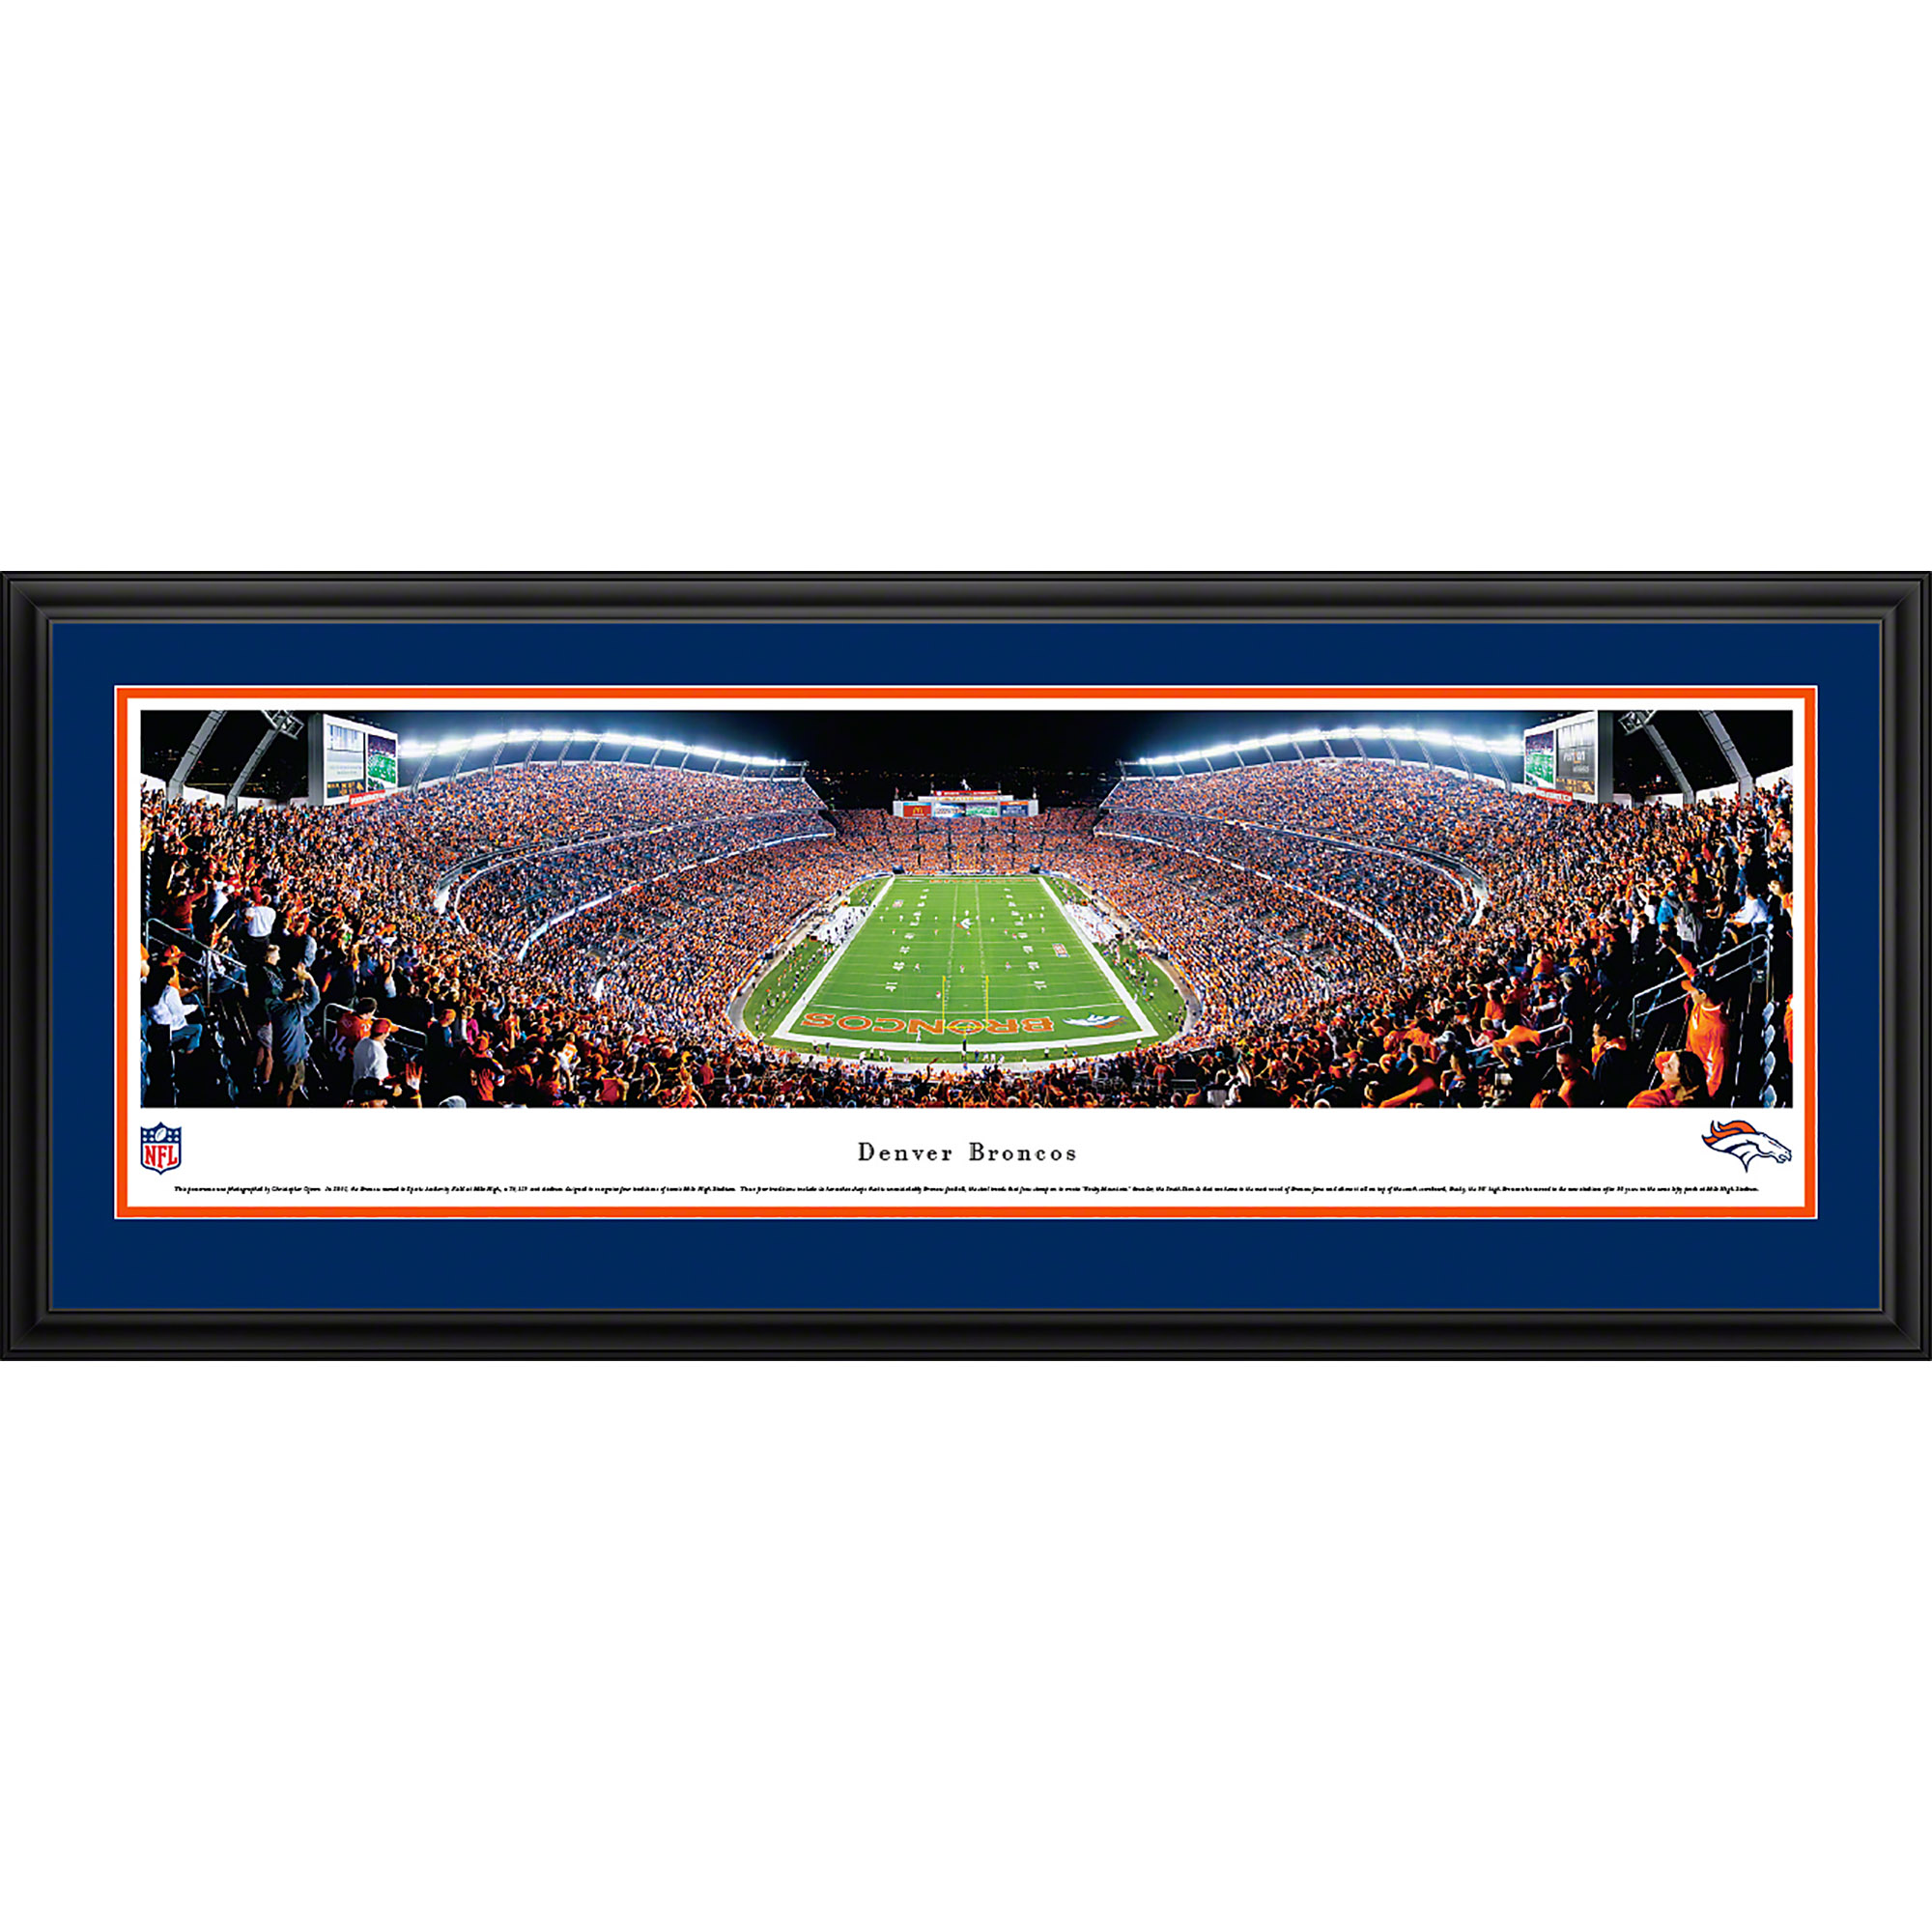 Denver Broncos - End Zone at Sports Authority Field at Mile High - Blakeway Panoramas NFL Print with Deluxe Frame and Double Mat